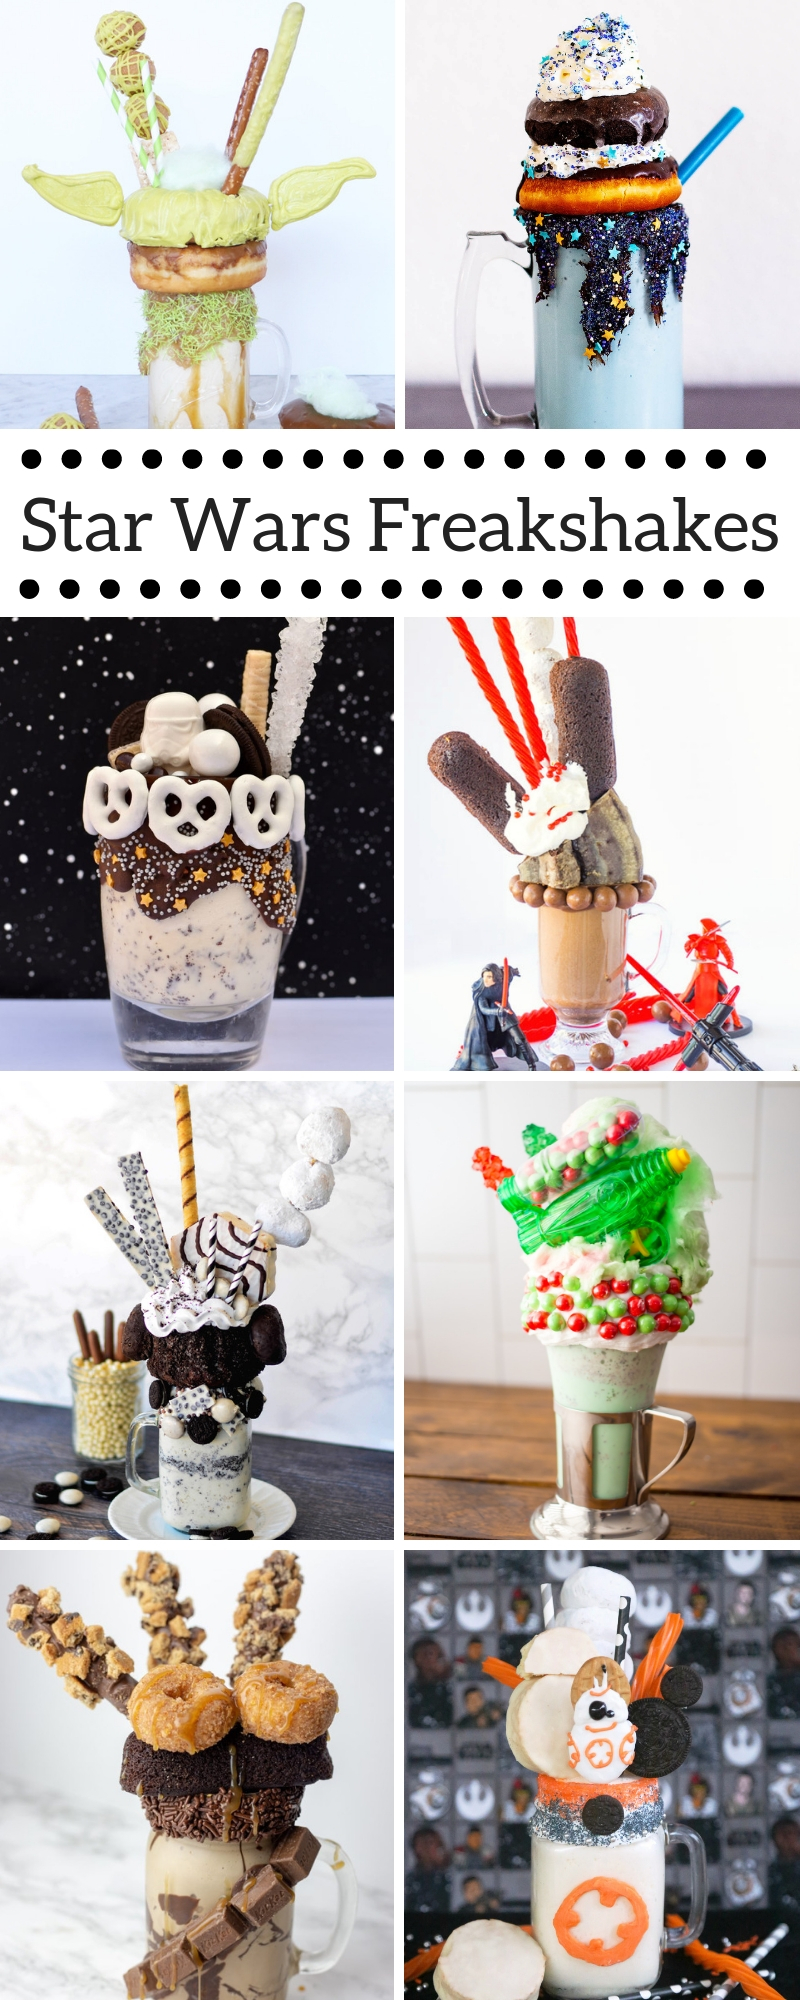 8 over the top Star Wars Freakshakes to celebrate Disney's new Star Wars lands. Perfect for a Star Wars party too.